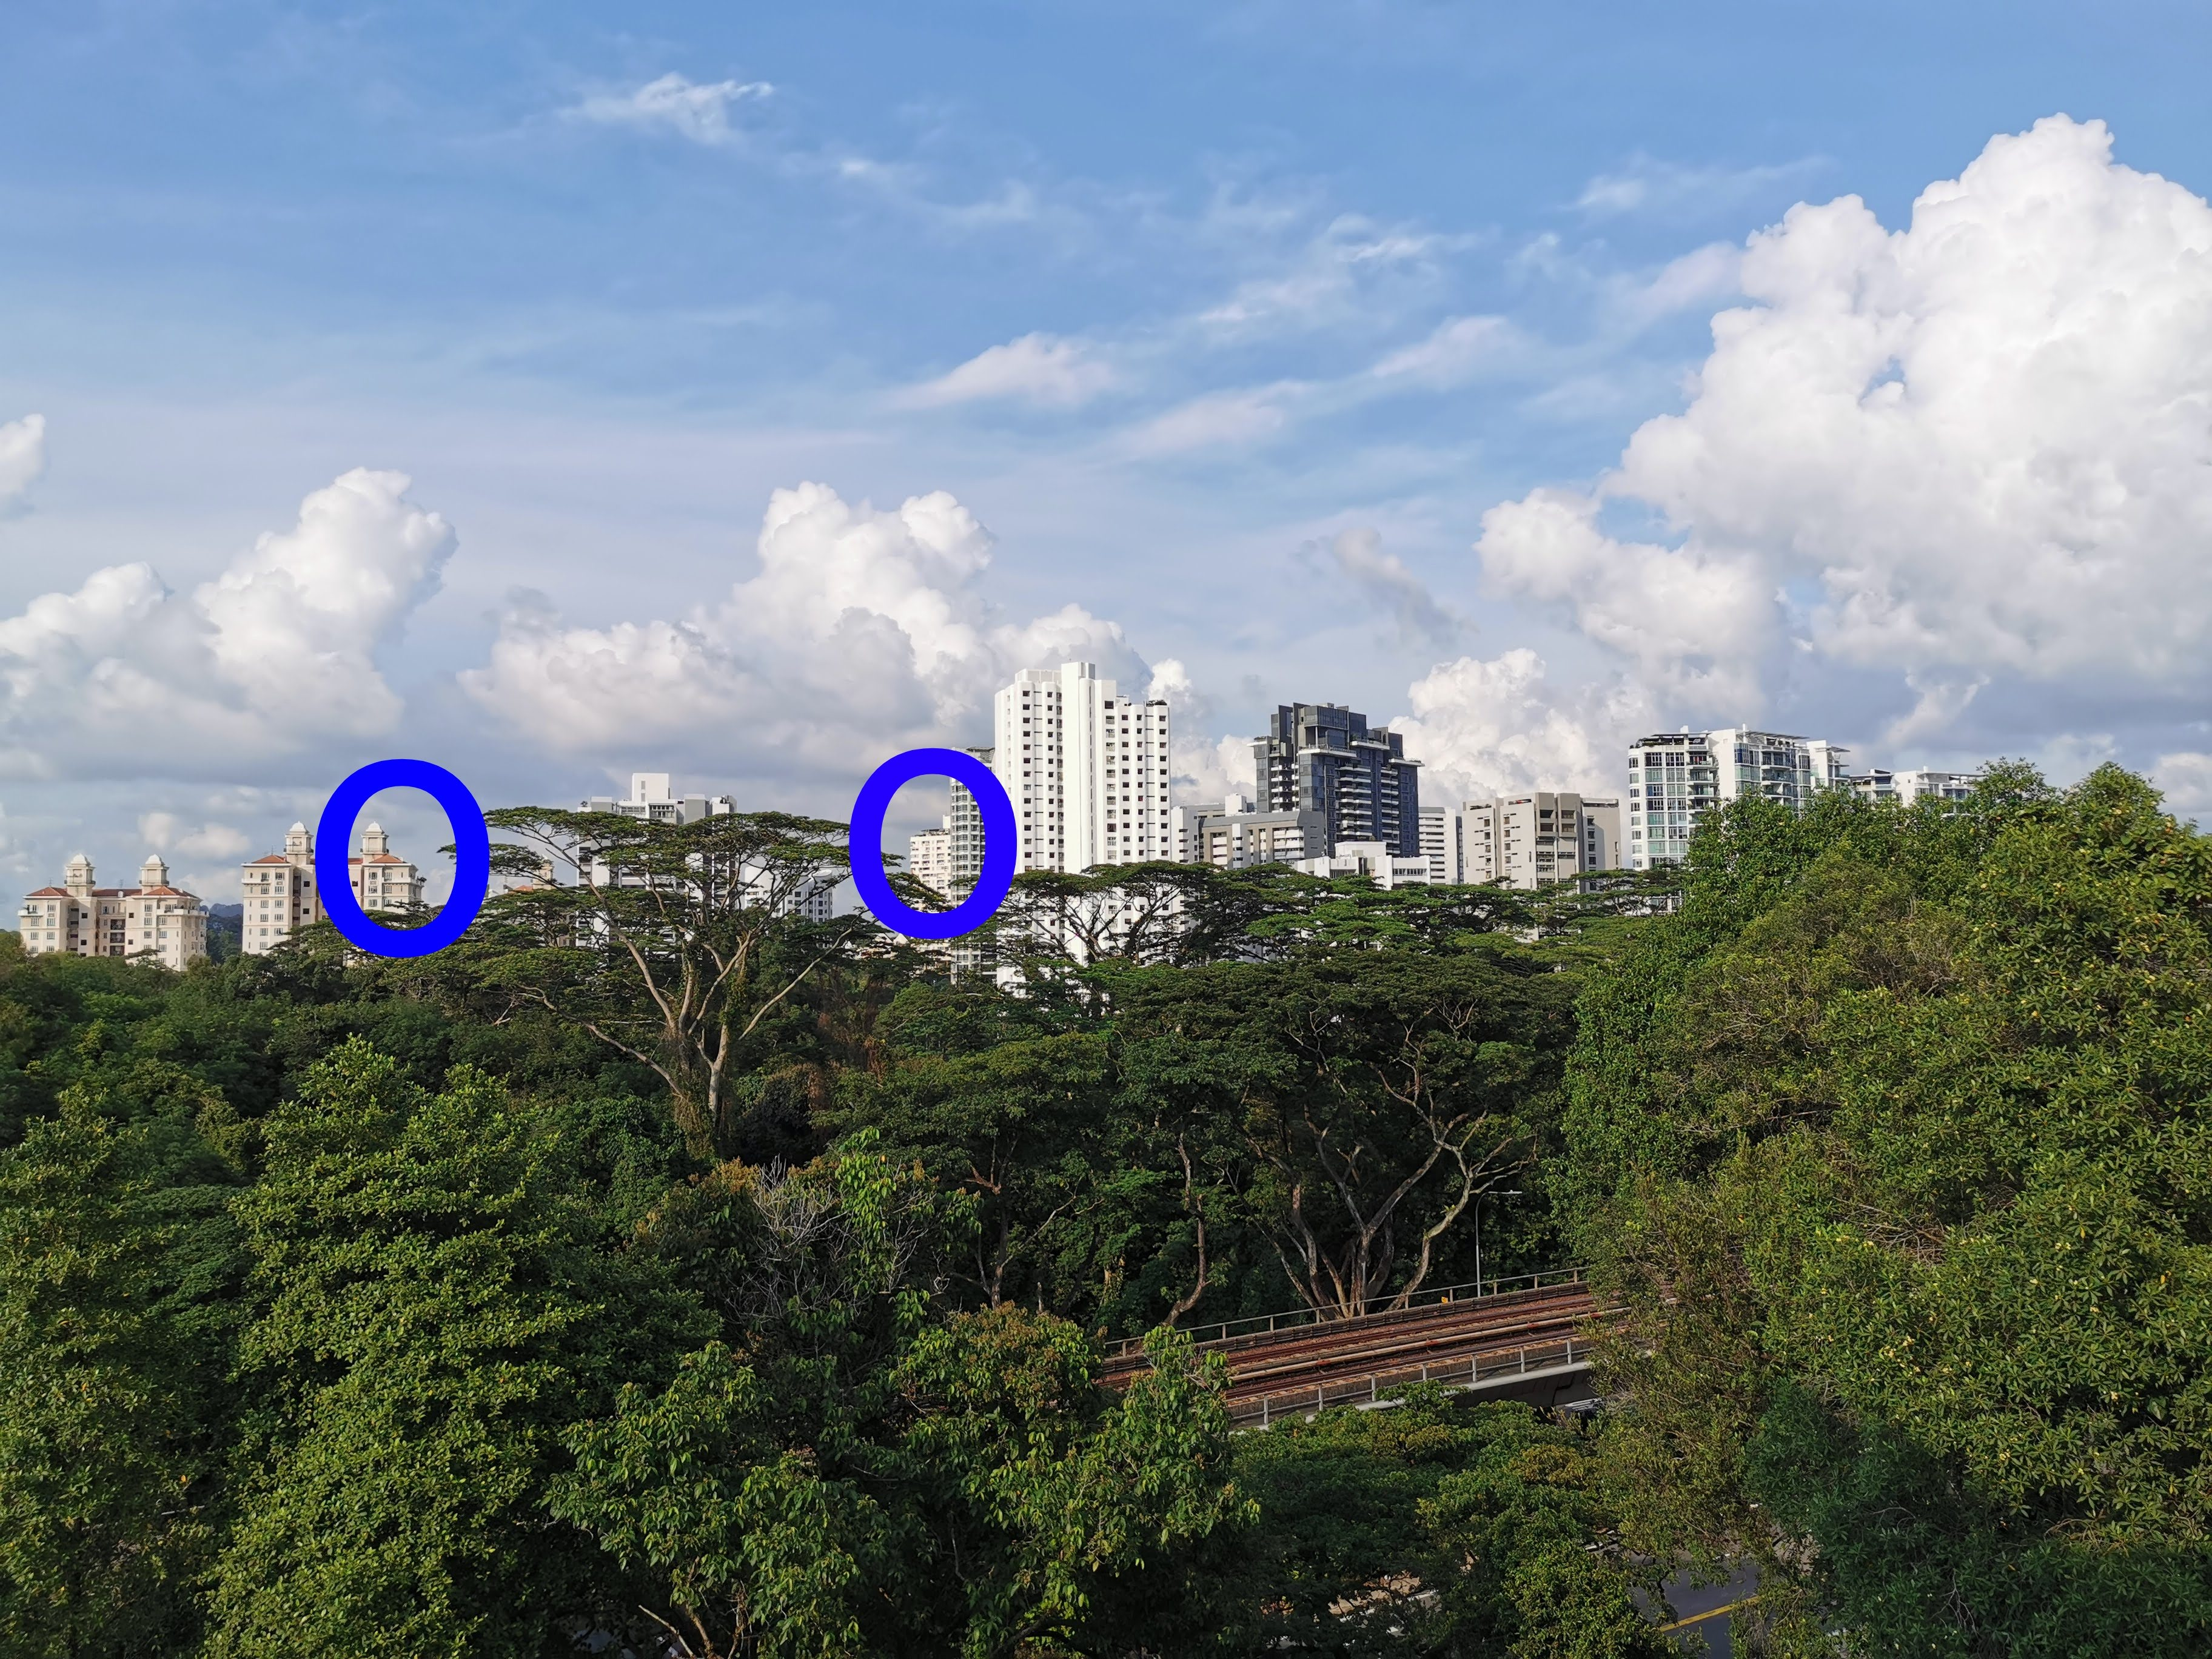 We're going to use this image as a guide for our zoom tests. Observe the two blue-circled areas. (This image was not shot with the Samsung devices.)